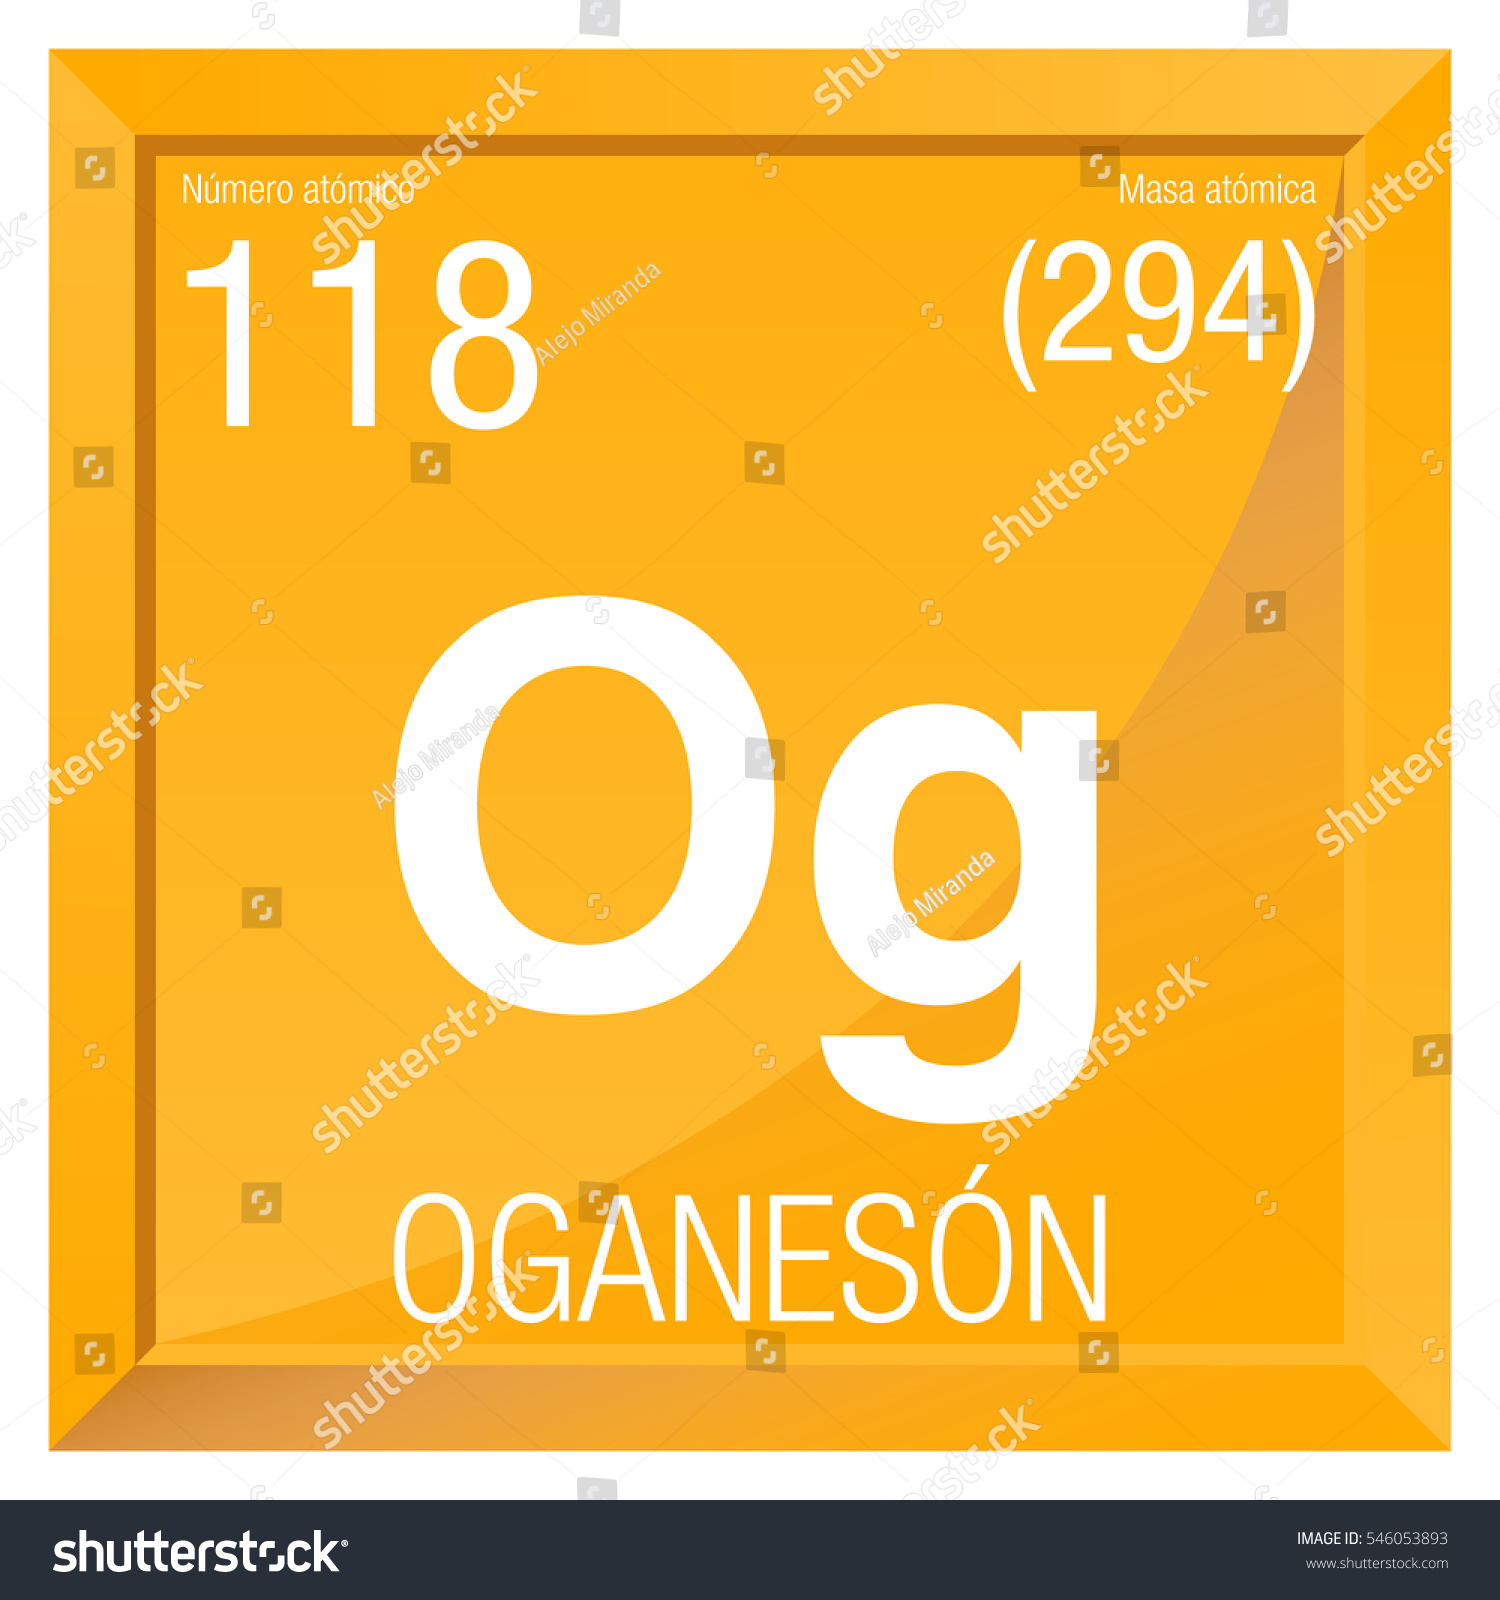 Symbol of mercury in the periodic table of elements images symbol of mercury in the periodic table of elements gallery oganeson symbol oganesson spanish language element gamestrikefo Images